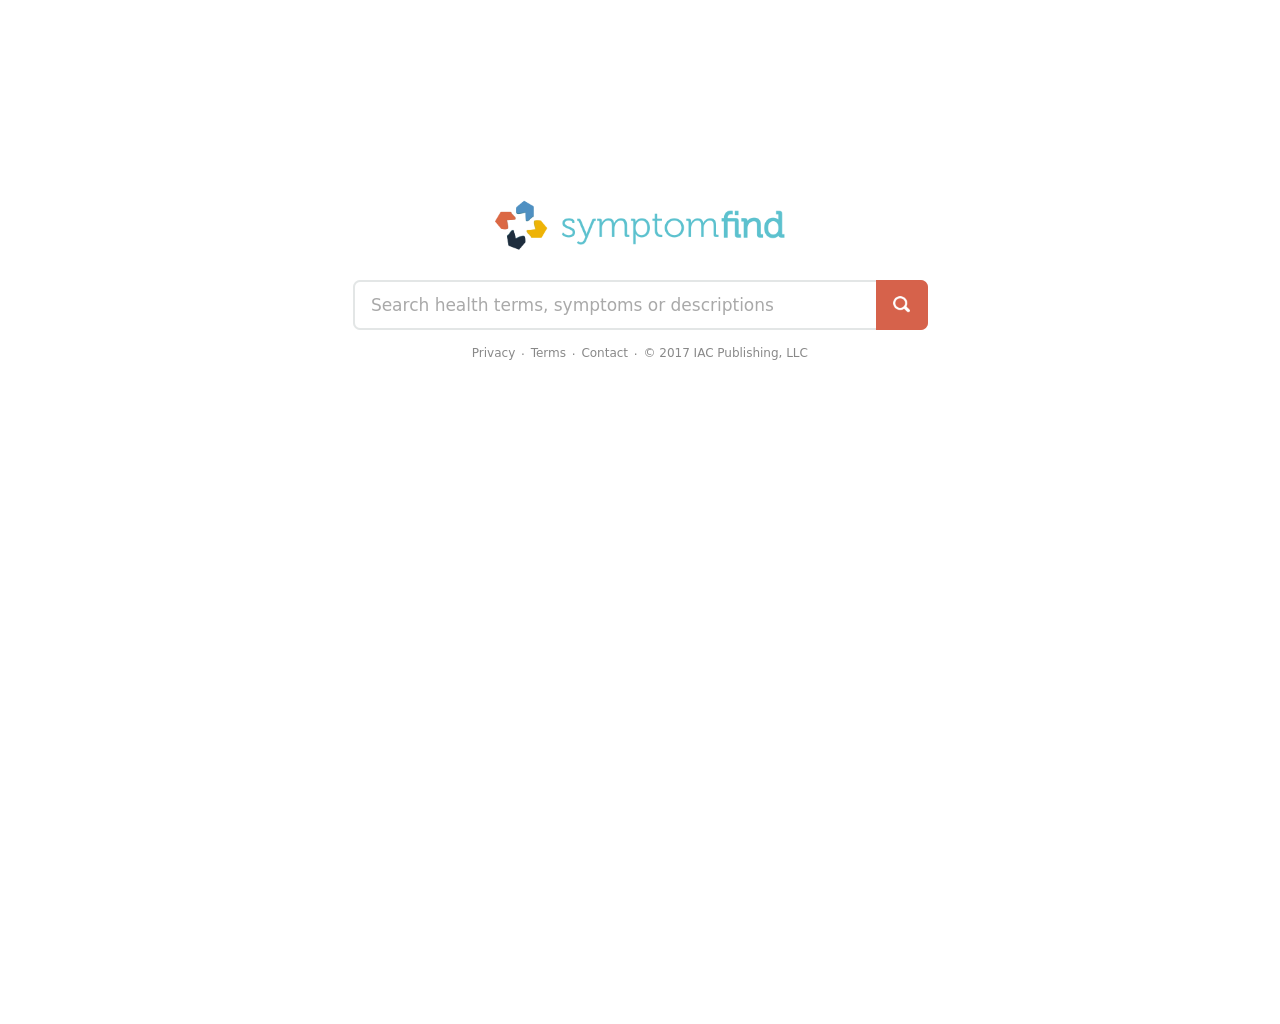 Symptomfind-Advertising-Reviews-Pricing